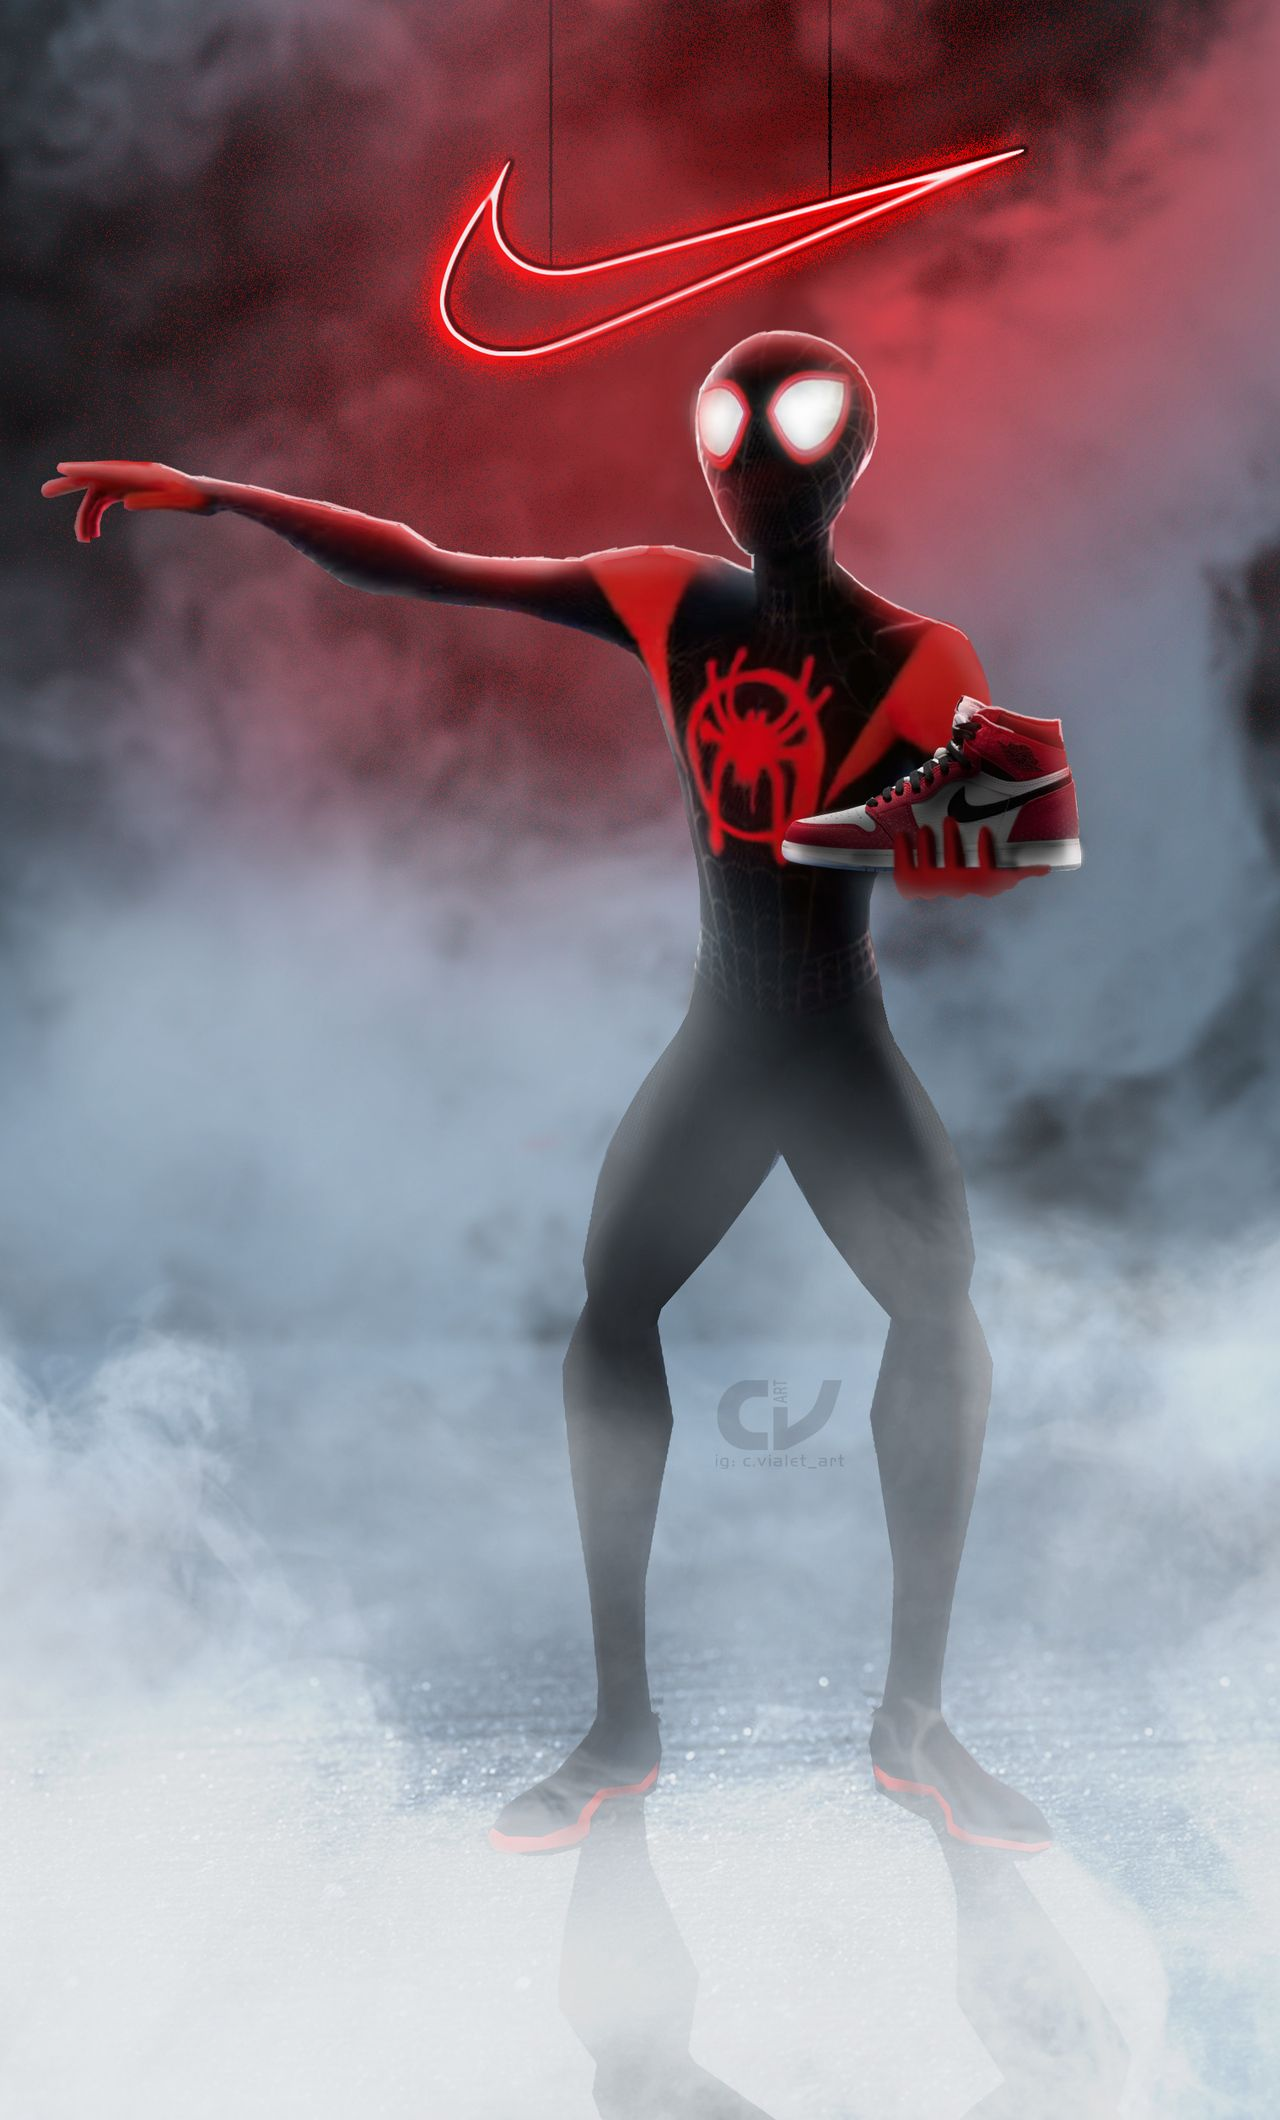 Miles Morales Iphone Wallpaper. 1280x2120 Spiderman Miles